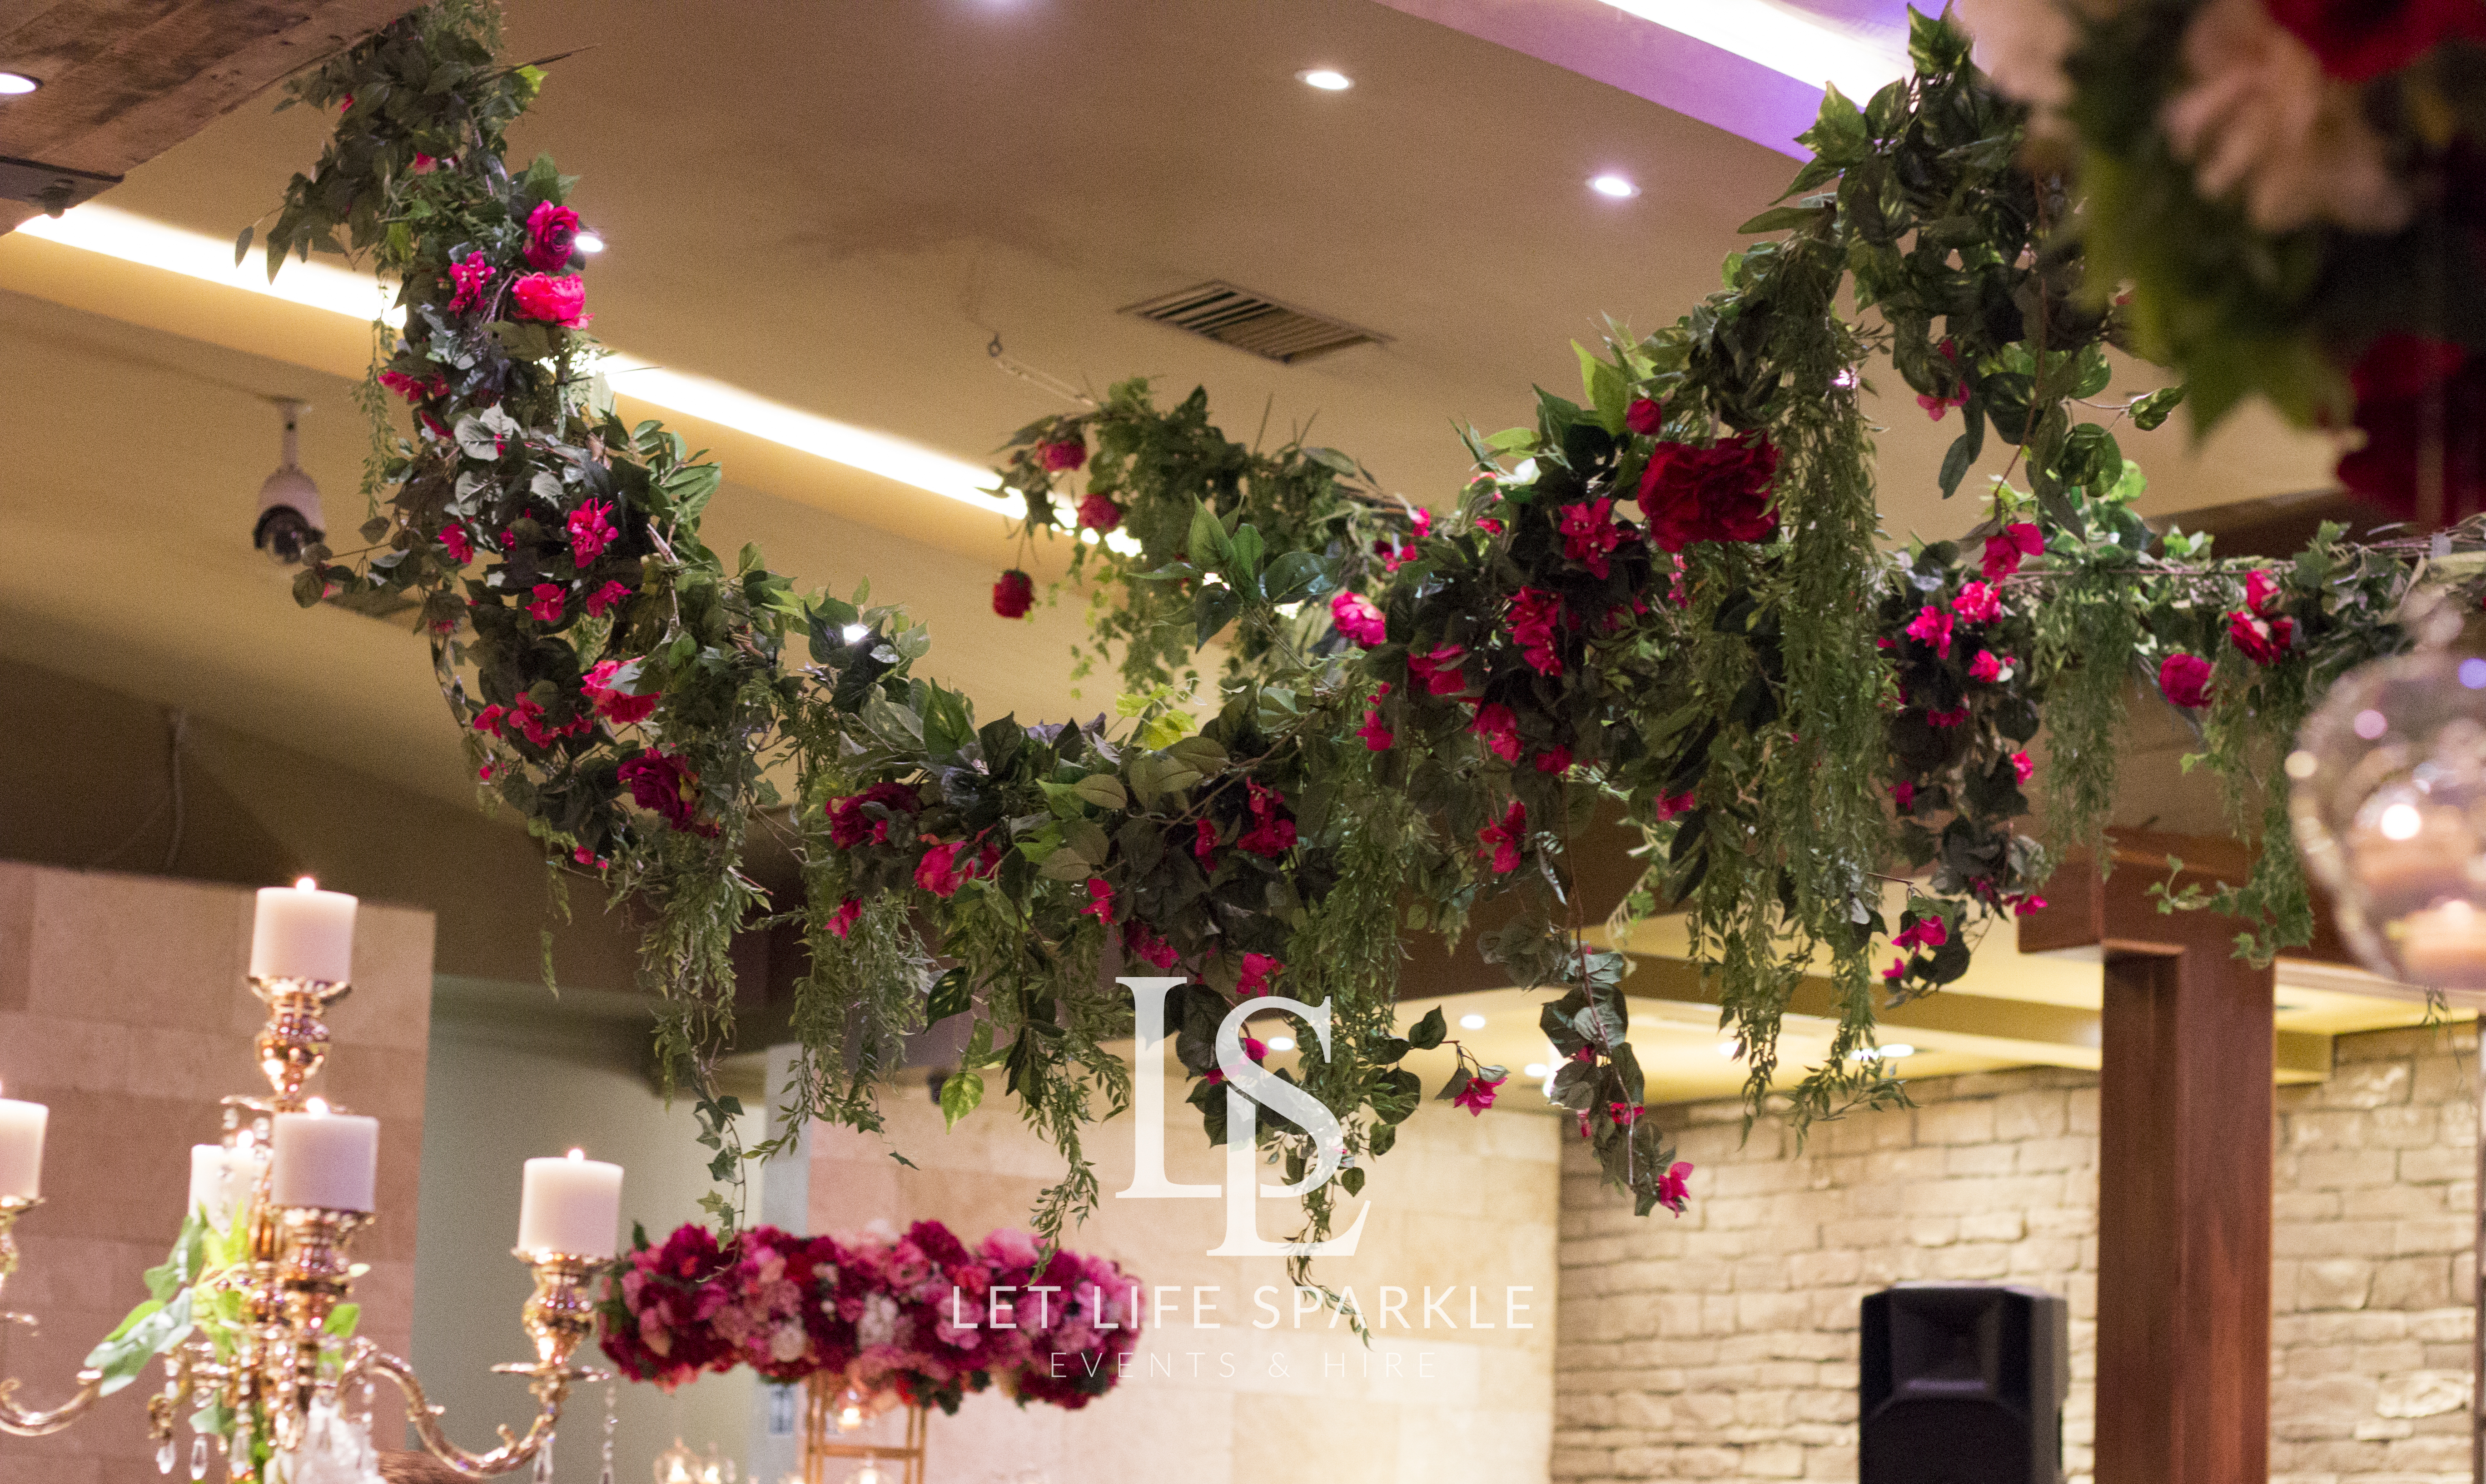 Foliage & Floral Strands Ceiling Canopy